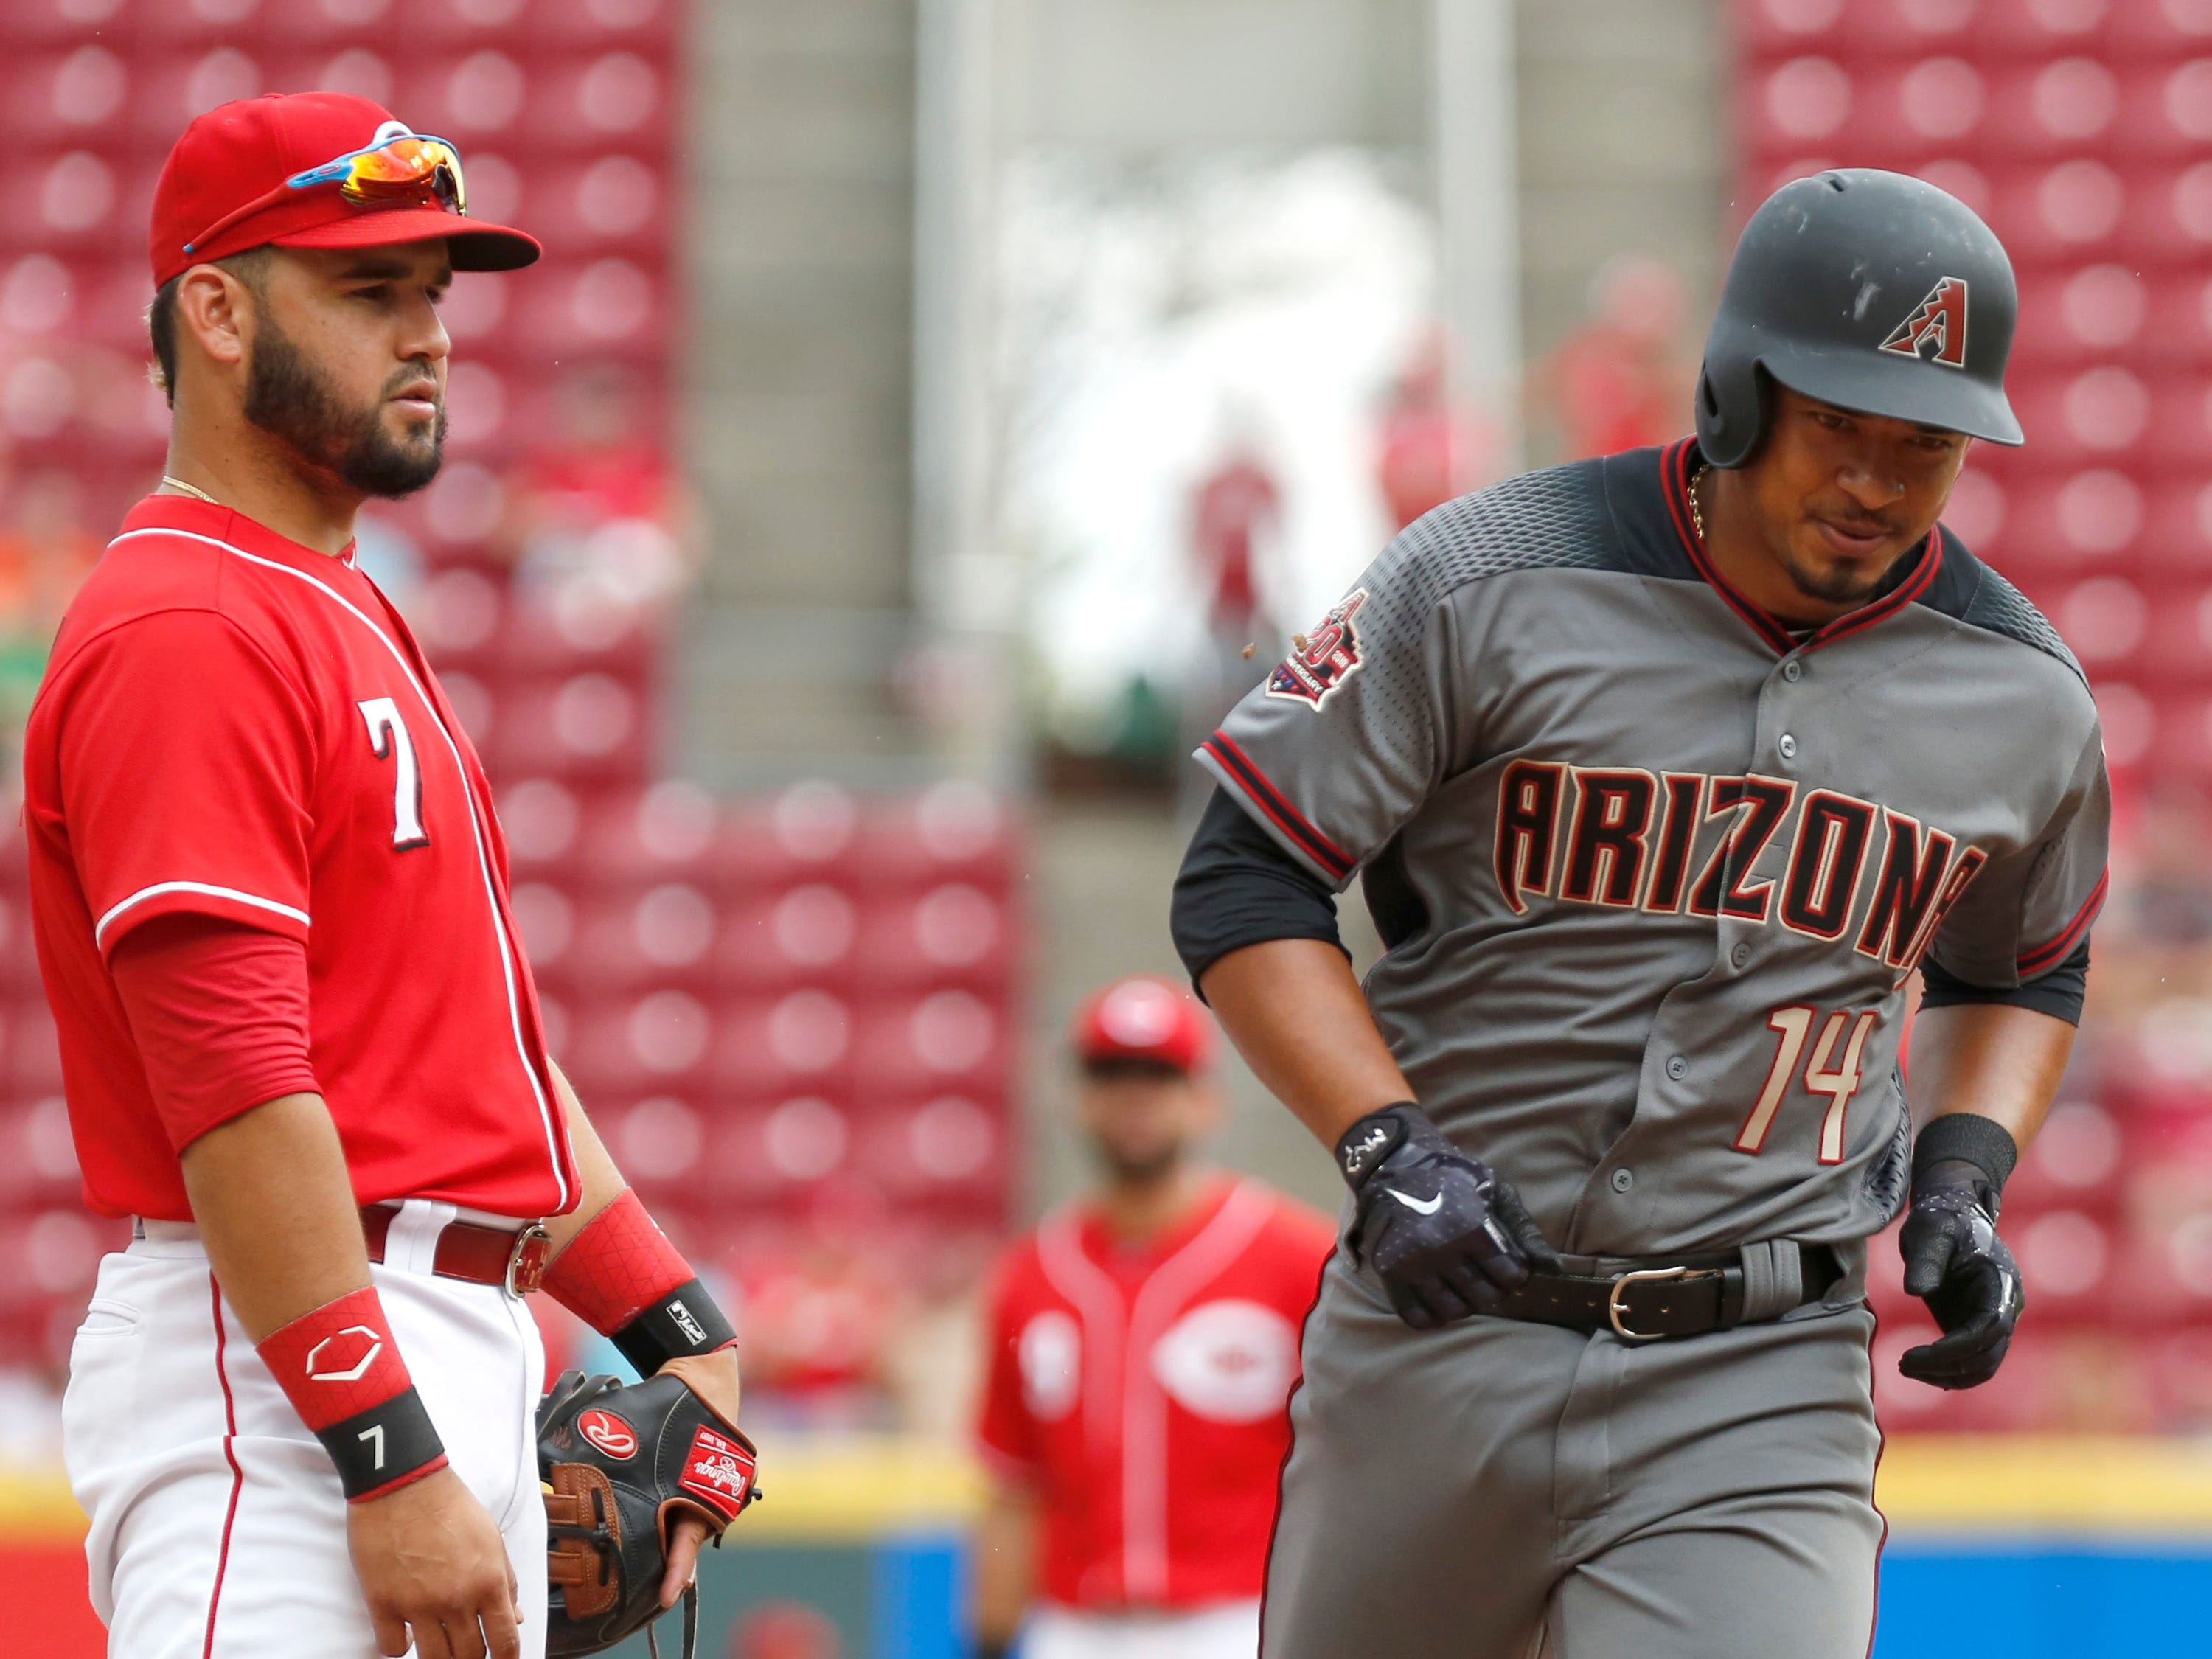 Aug 12, 2018; Cincinnati, OH, USA; Arizona Diamondbacks third baseman Eduardo Escobar (14) rounds the bases past Cincinnati Reds third baseman Eugenio Suarez (7) after hitting a two-run home run during the ninth inning at Great American Ball Park. Mandatory Credit: David Kohl-USA TODAY Sports